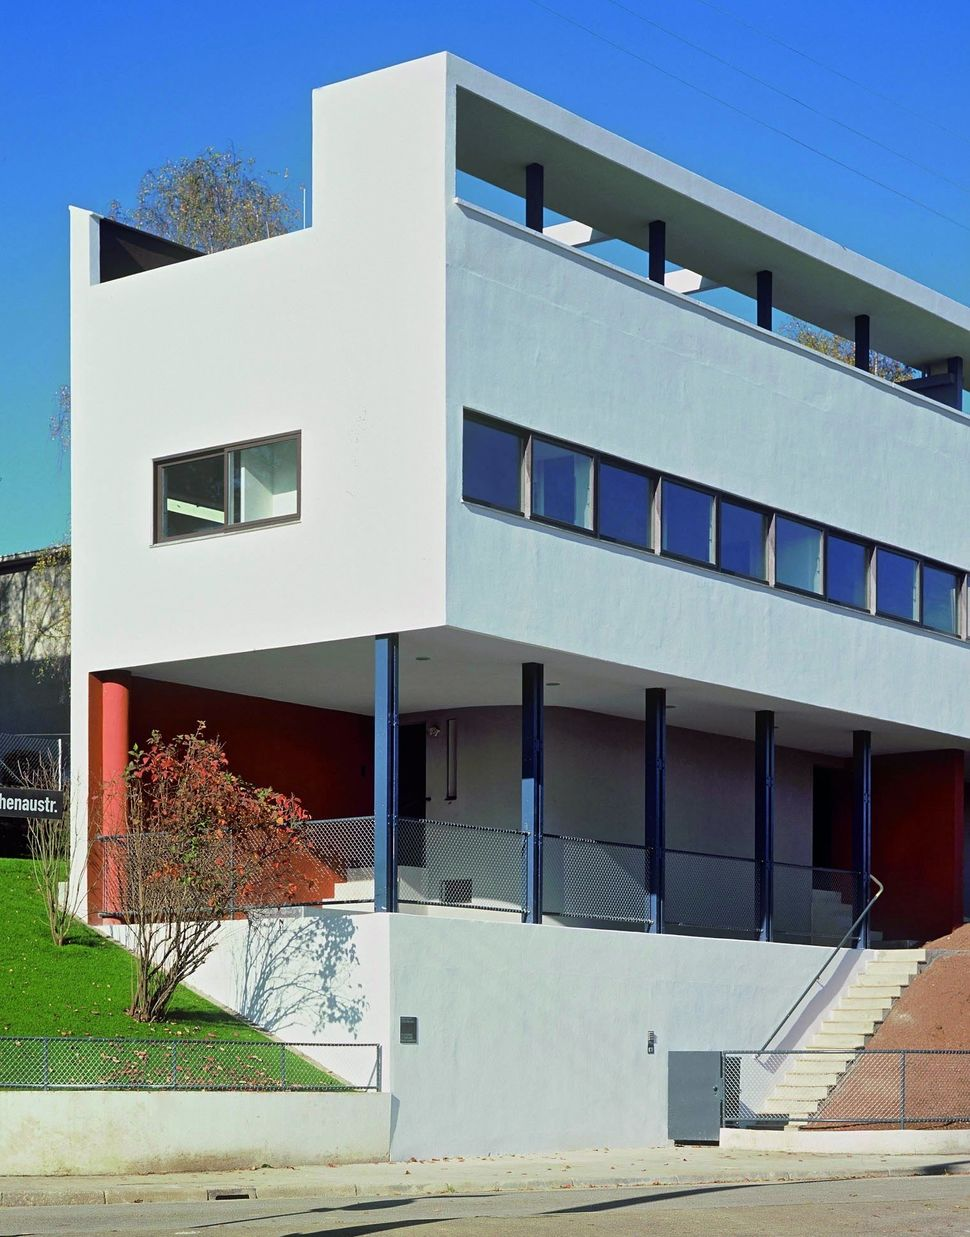 "Le Corbusier designed two buildings on the Weissenhof estate in Stuttgart, Germany, in the late 1920s. They were <a href=""htt"